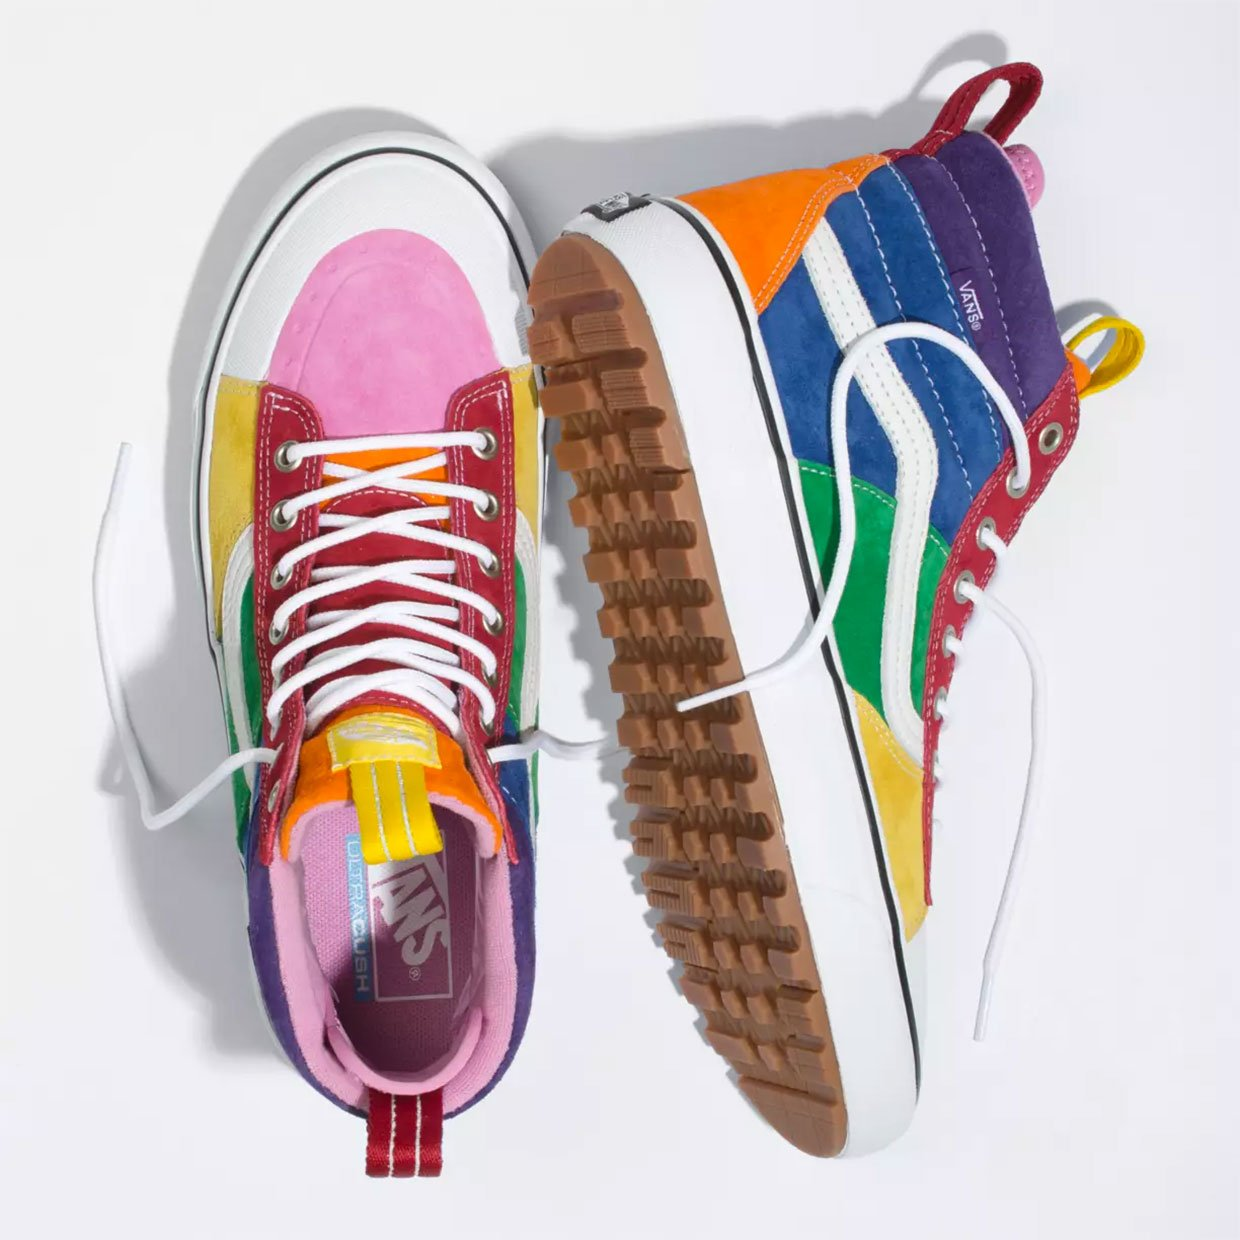 vans sk8 hi mte 2 0 dx bring a rainbow regardless of the weather vans sk8 hi mte 2 0 dx rainbow